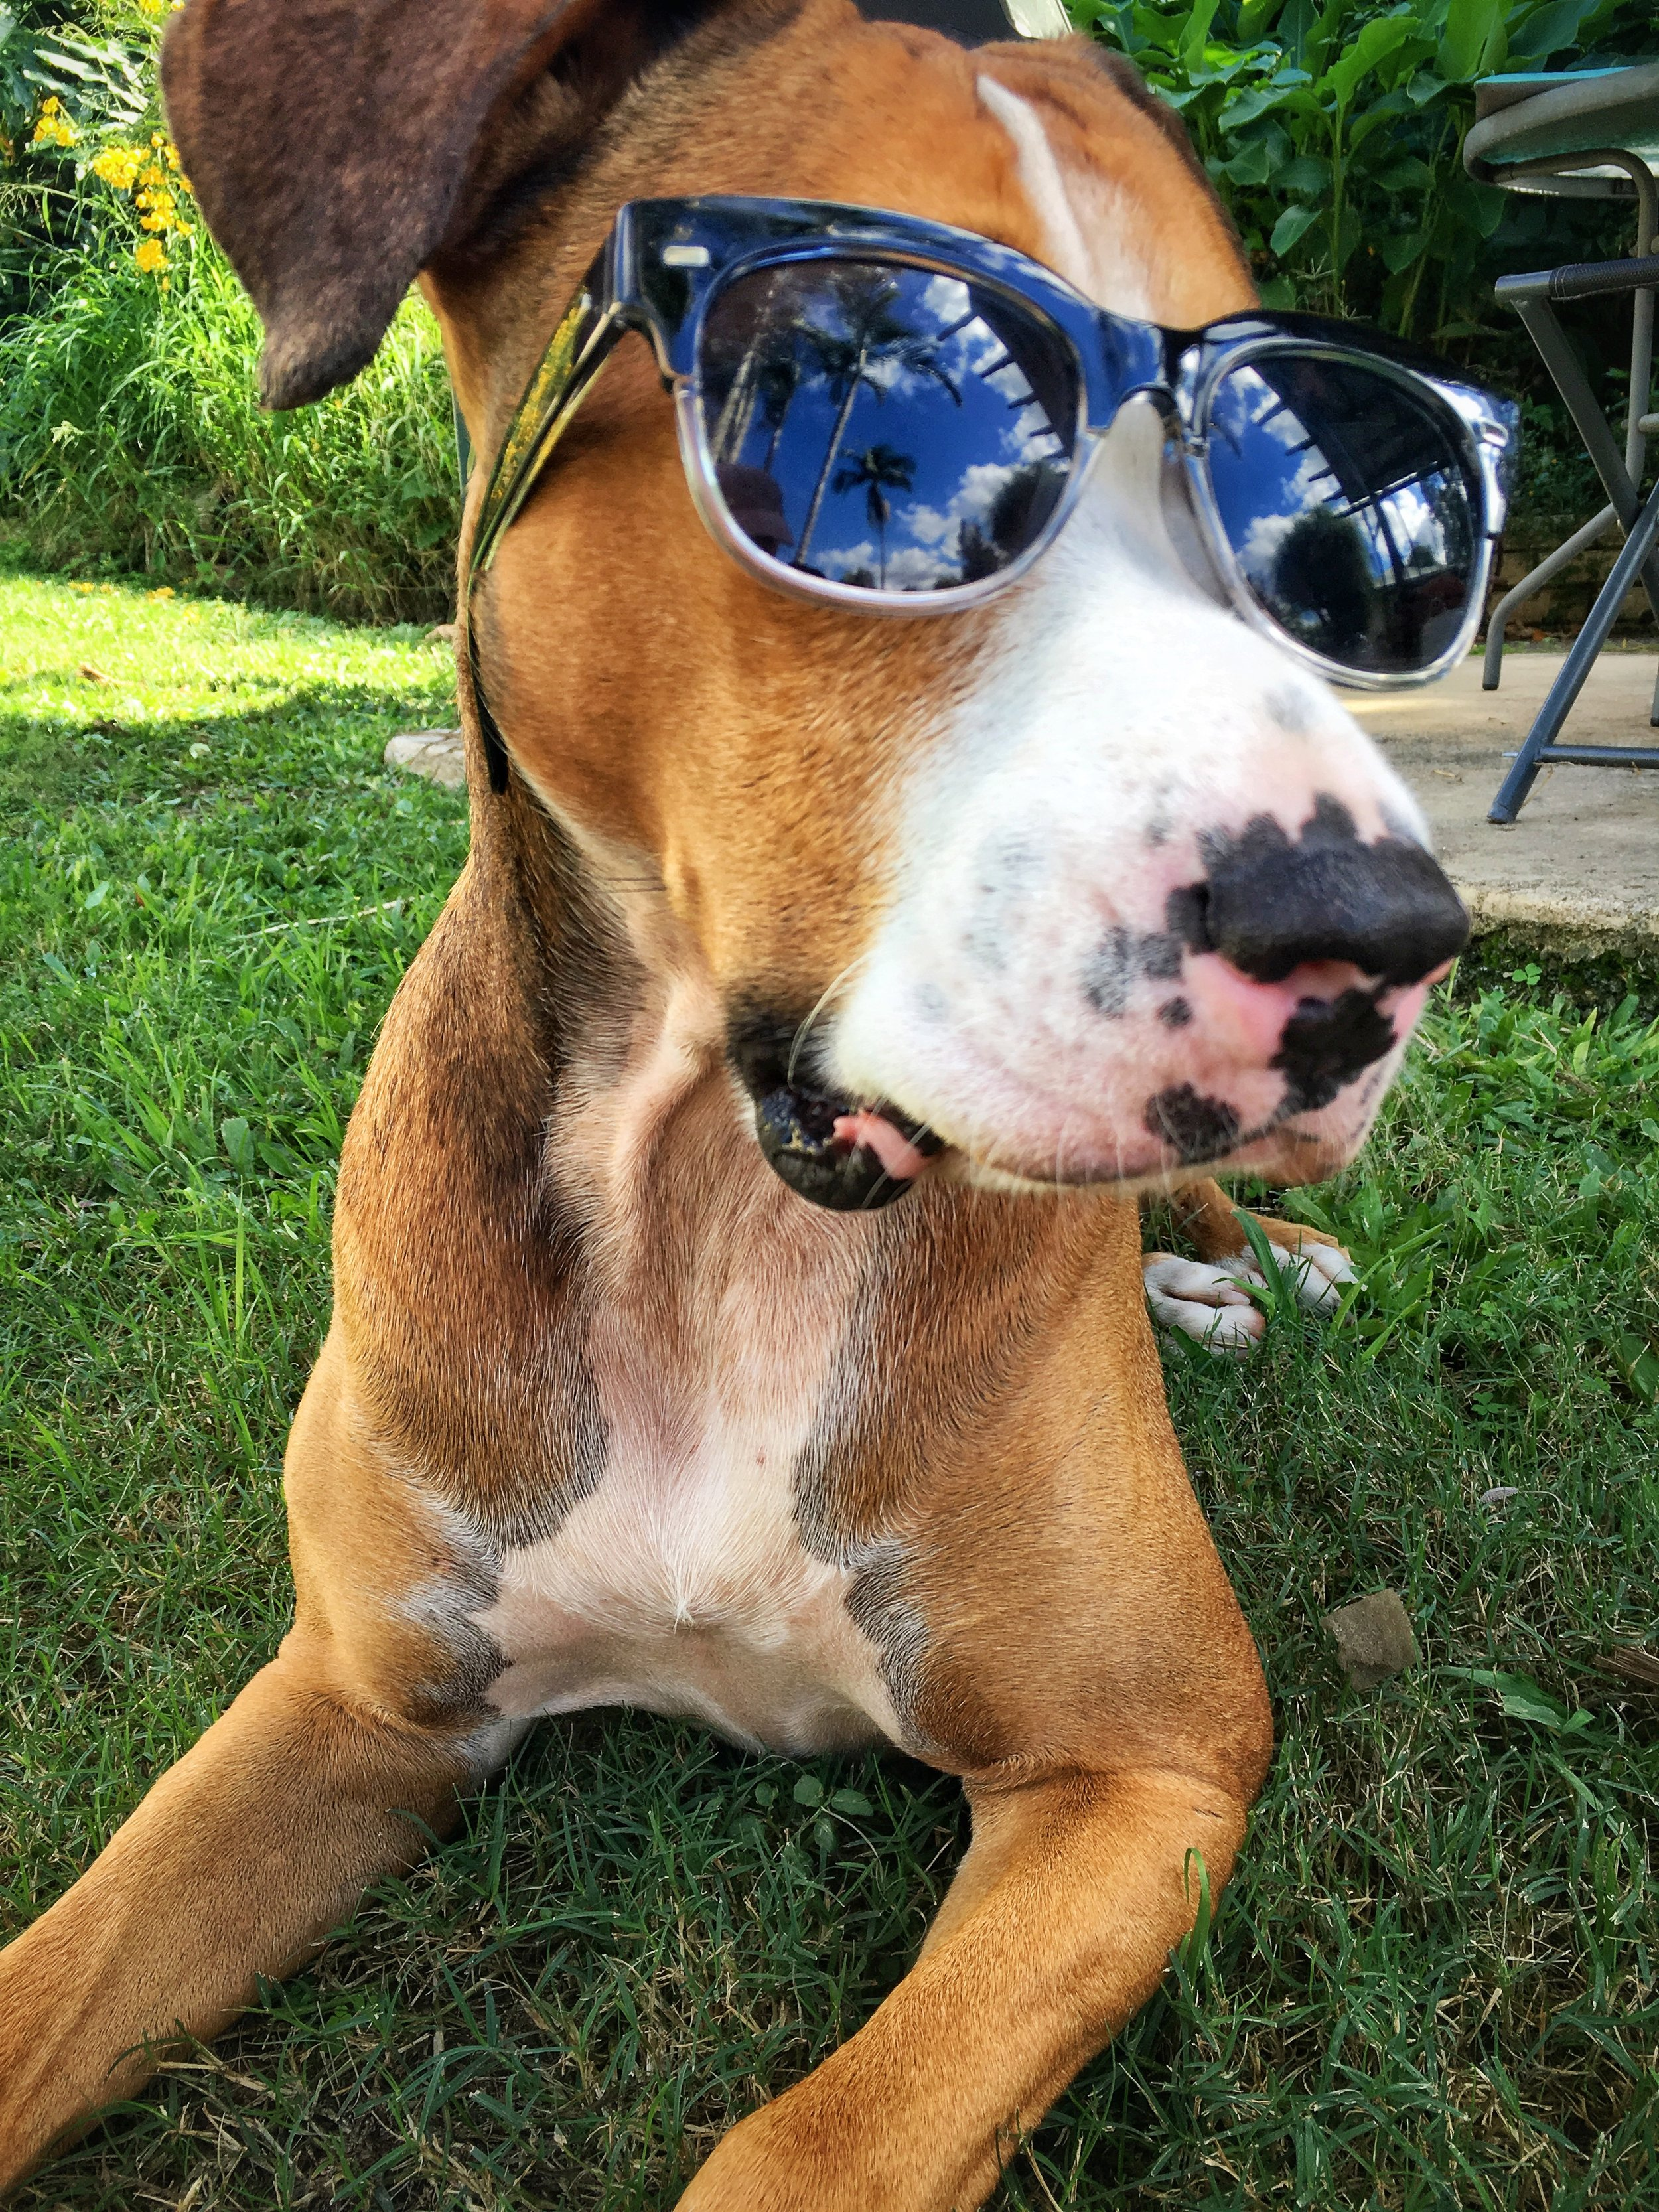 Amos rocking some sunglasses - I took this shot in about 5seconds before he tipped them off.